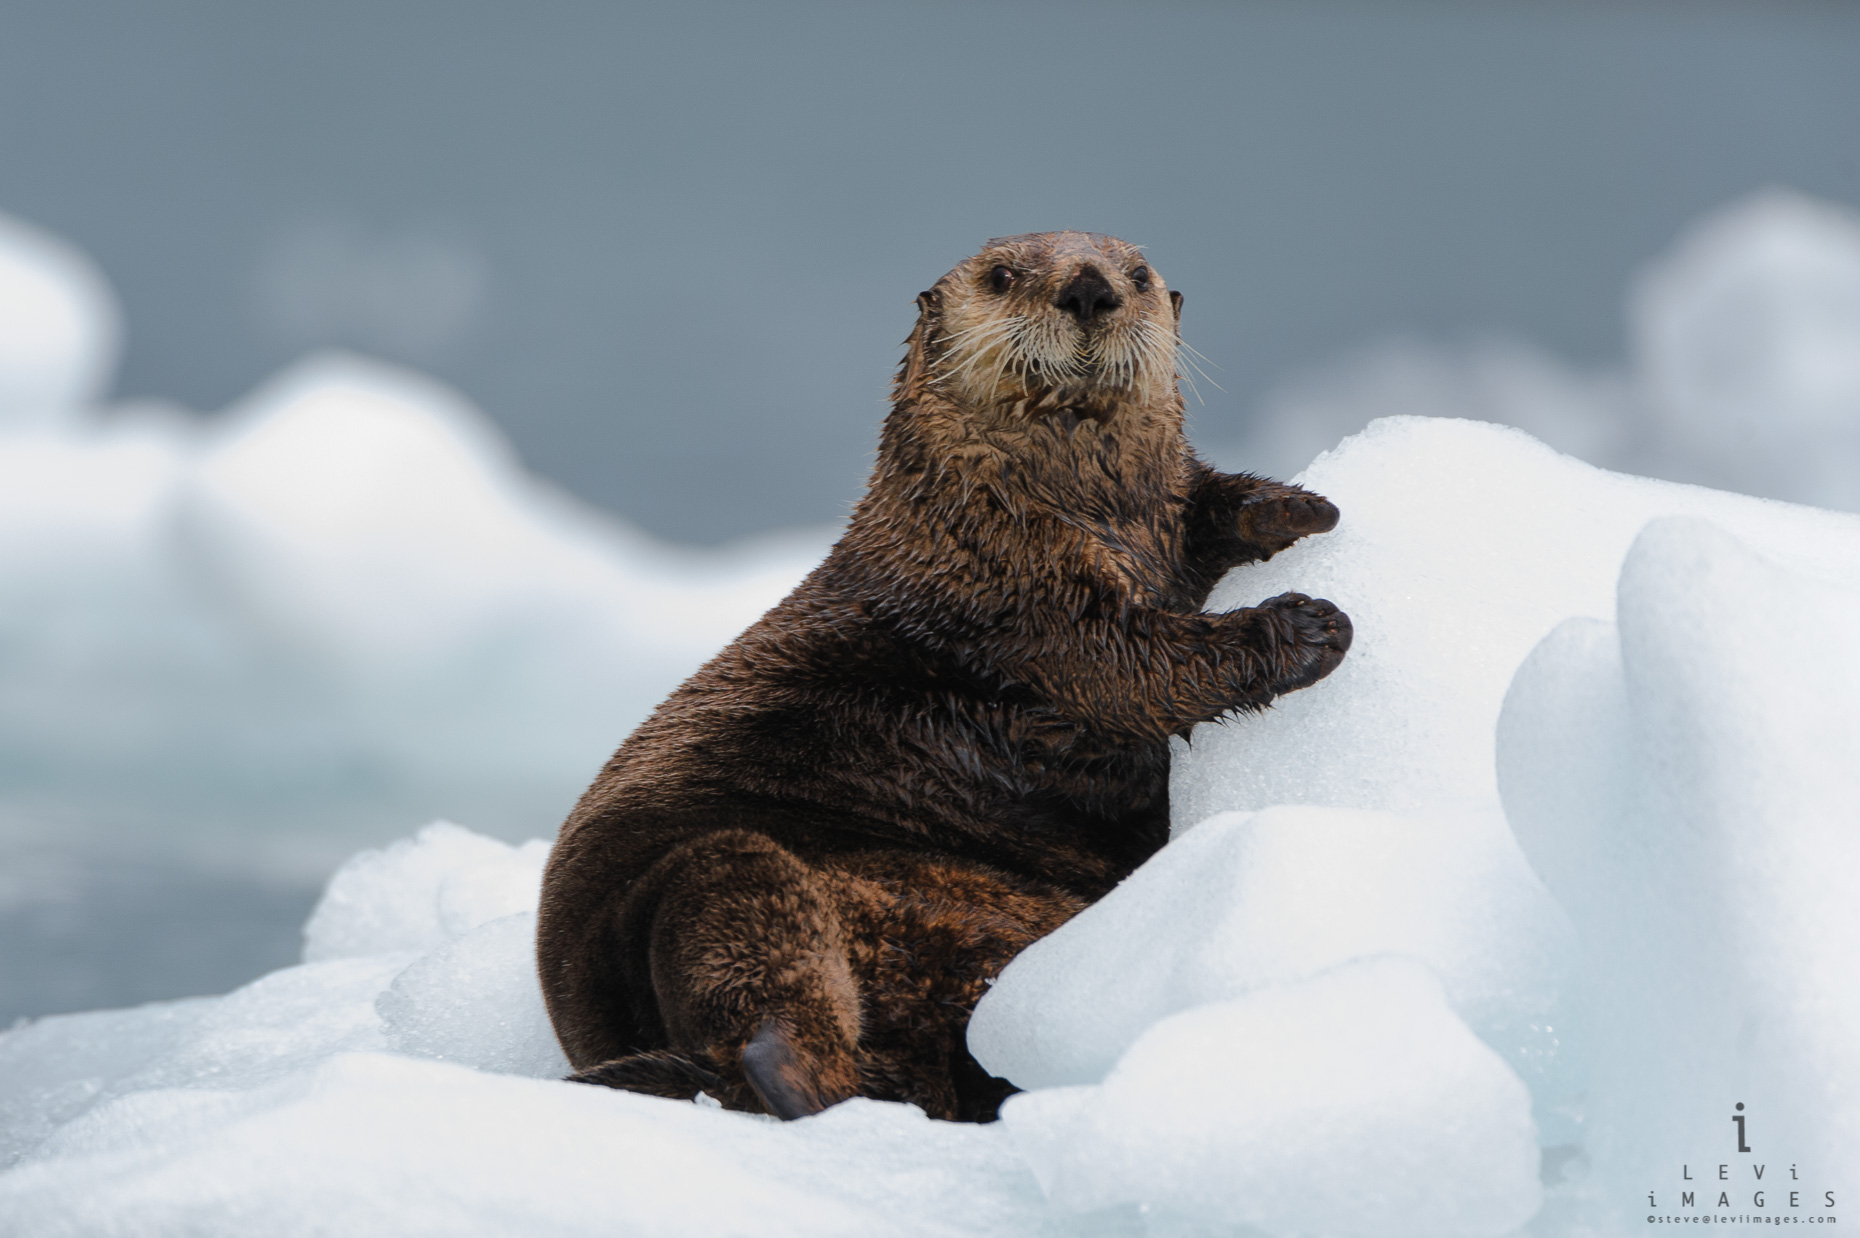 A sea otter (Enhydra lutris) poses on ice in Prince William Sound, Alaska